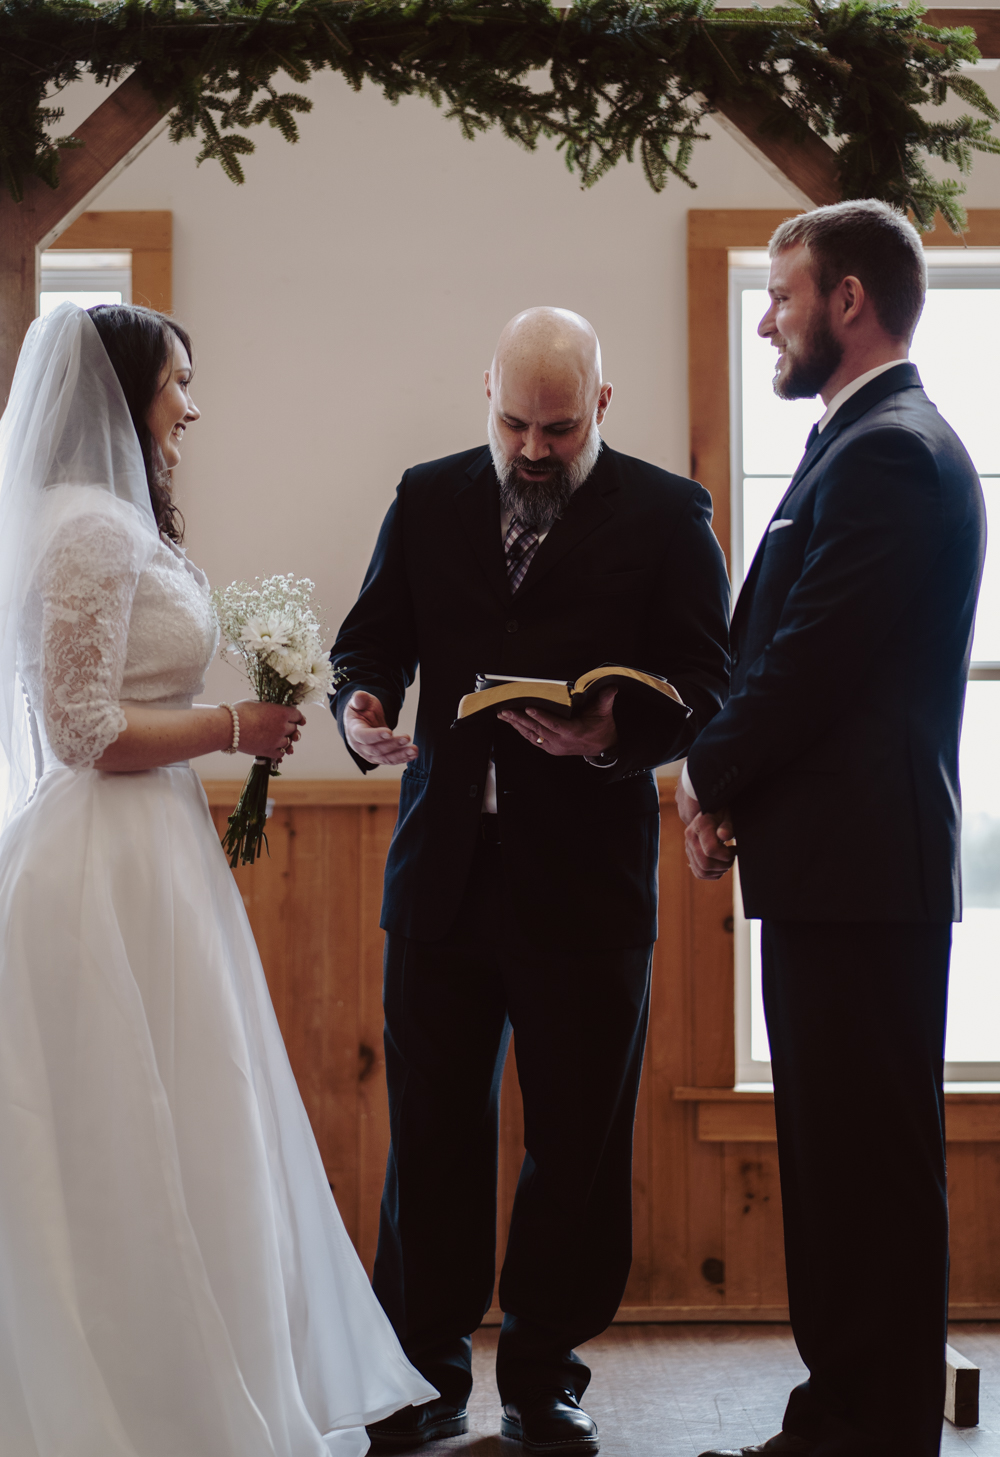 Having my dad perform our ceremony and marry us is one of the coolest parts of our wedding.